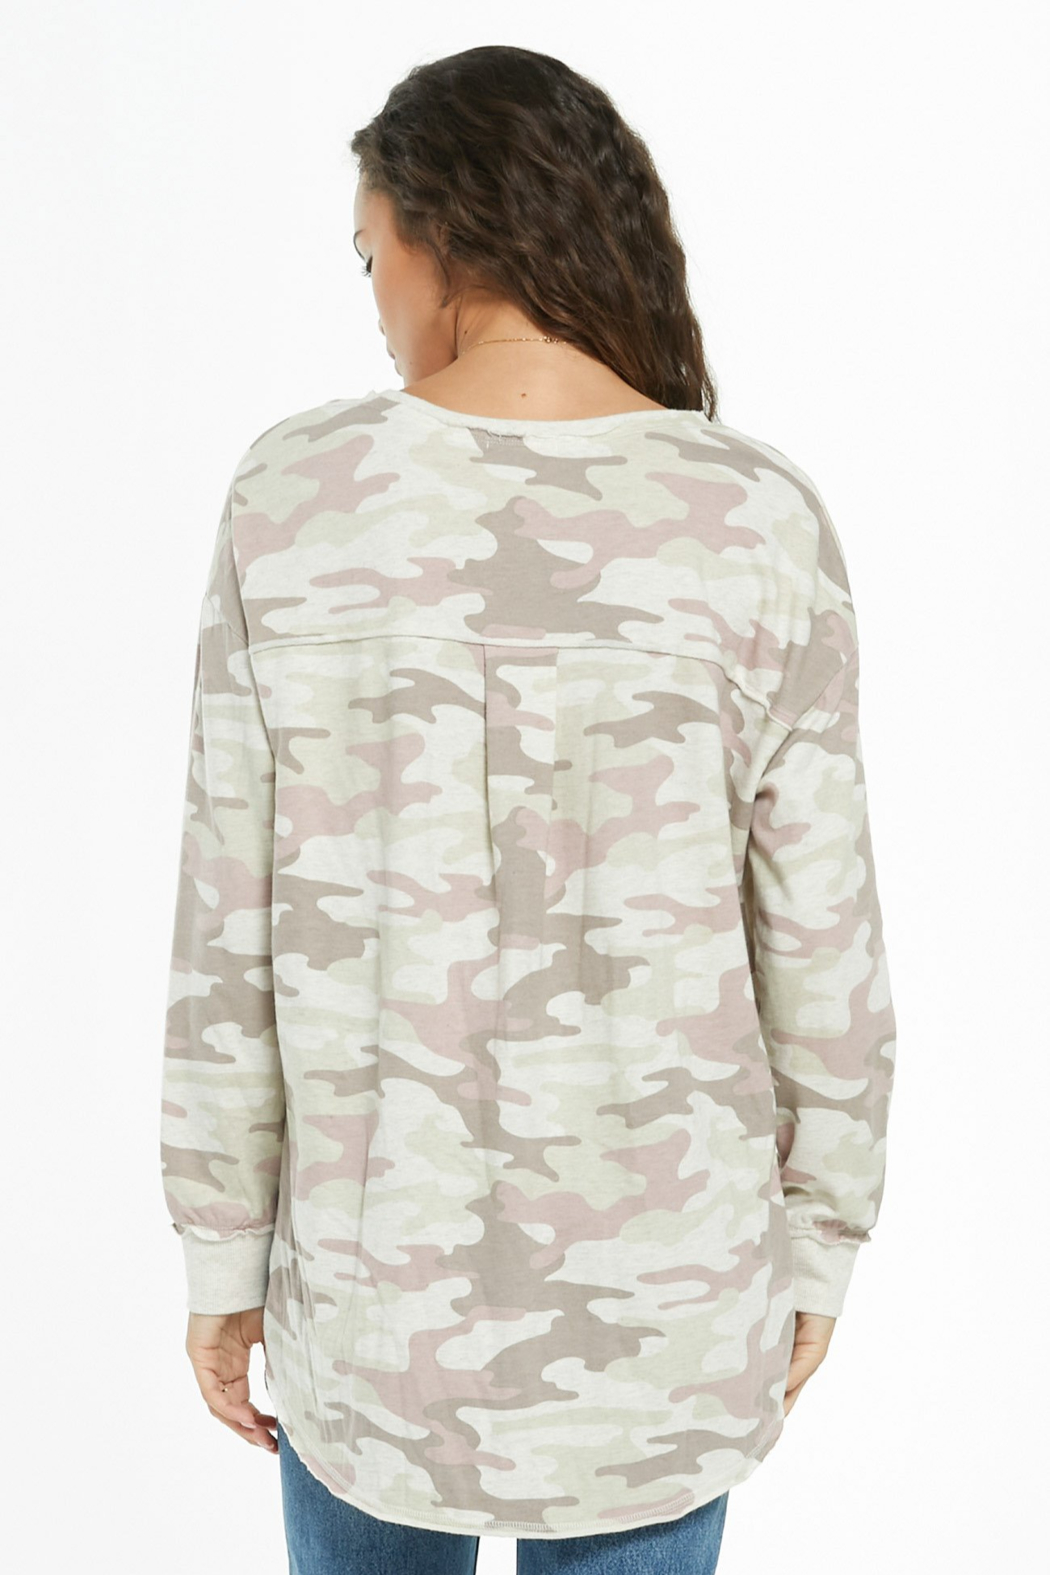 z supply Dusty Camo V-Neck Weekender - Side Cropped Image